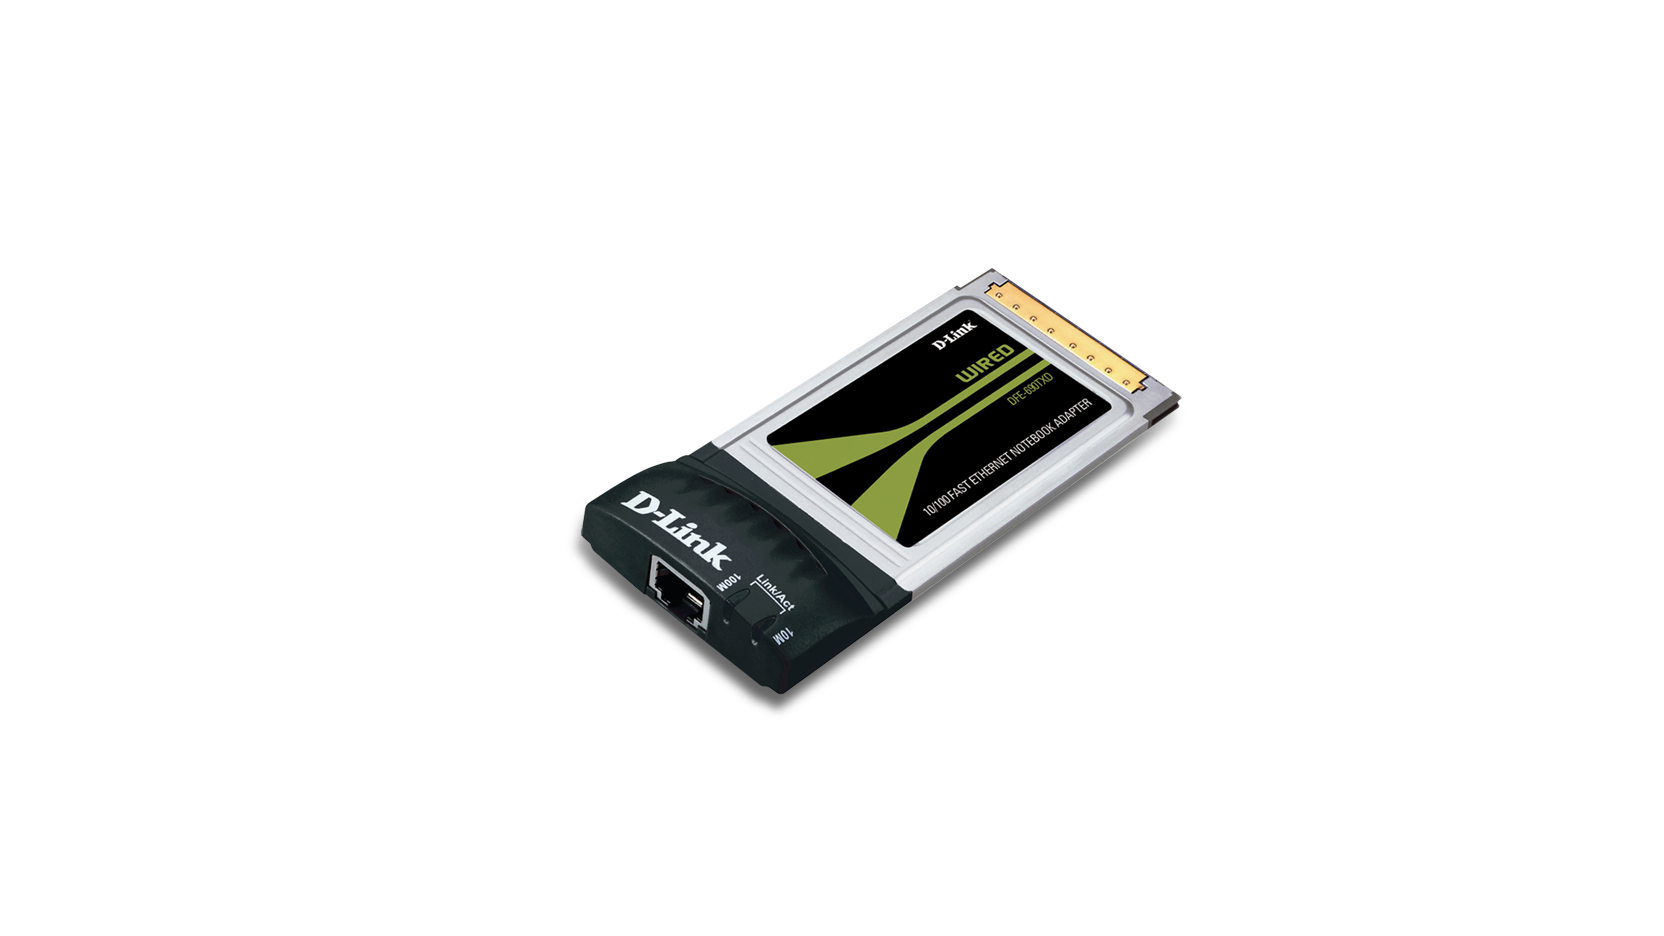 D LINK DFE-690TXD DRIVERS FOR WINDOWS 10